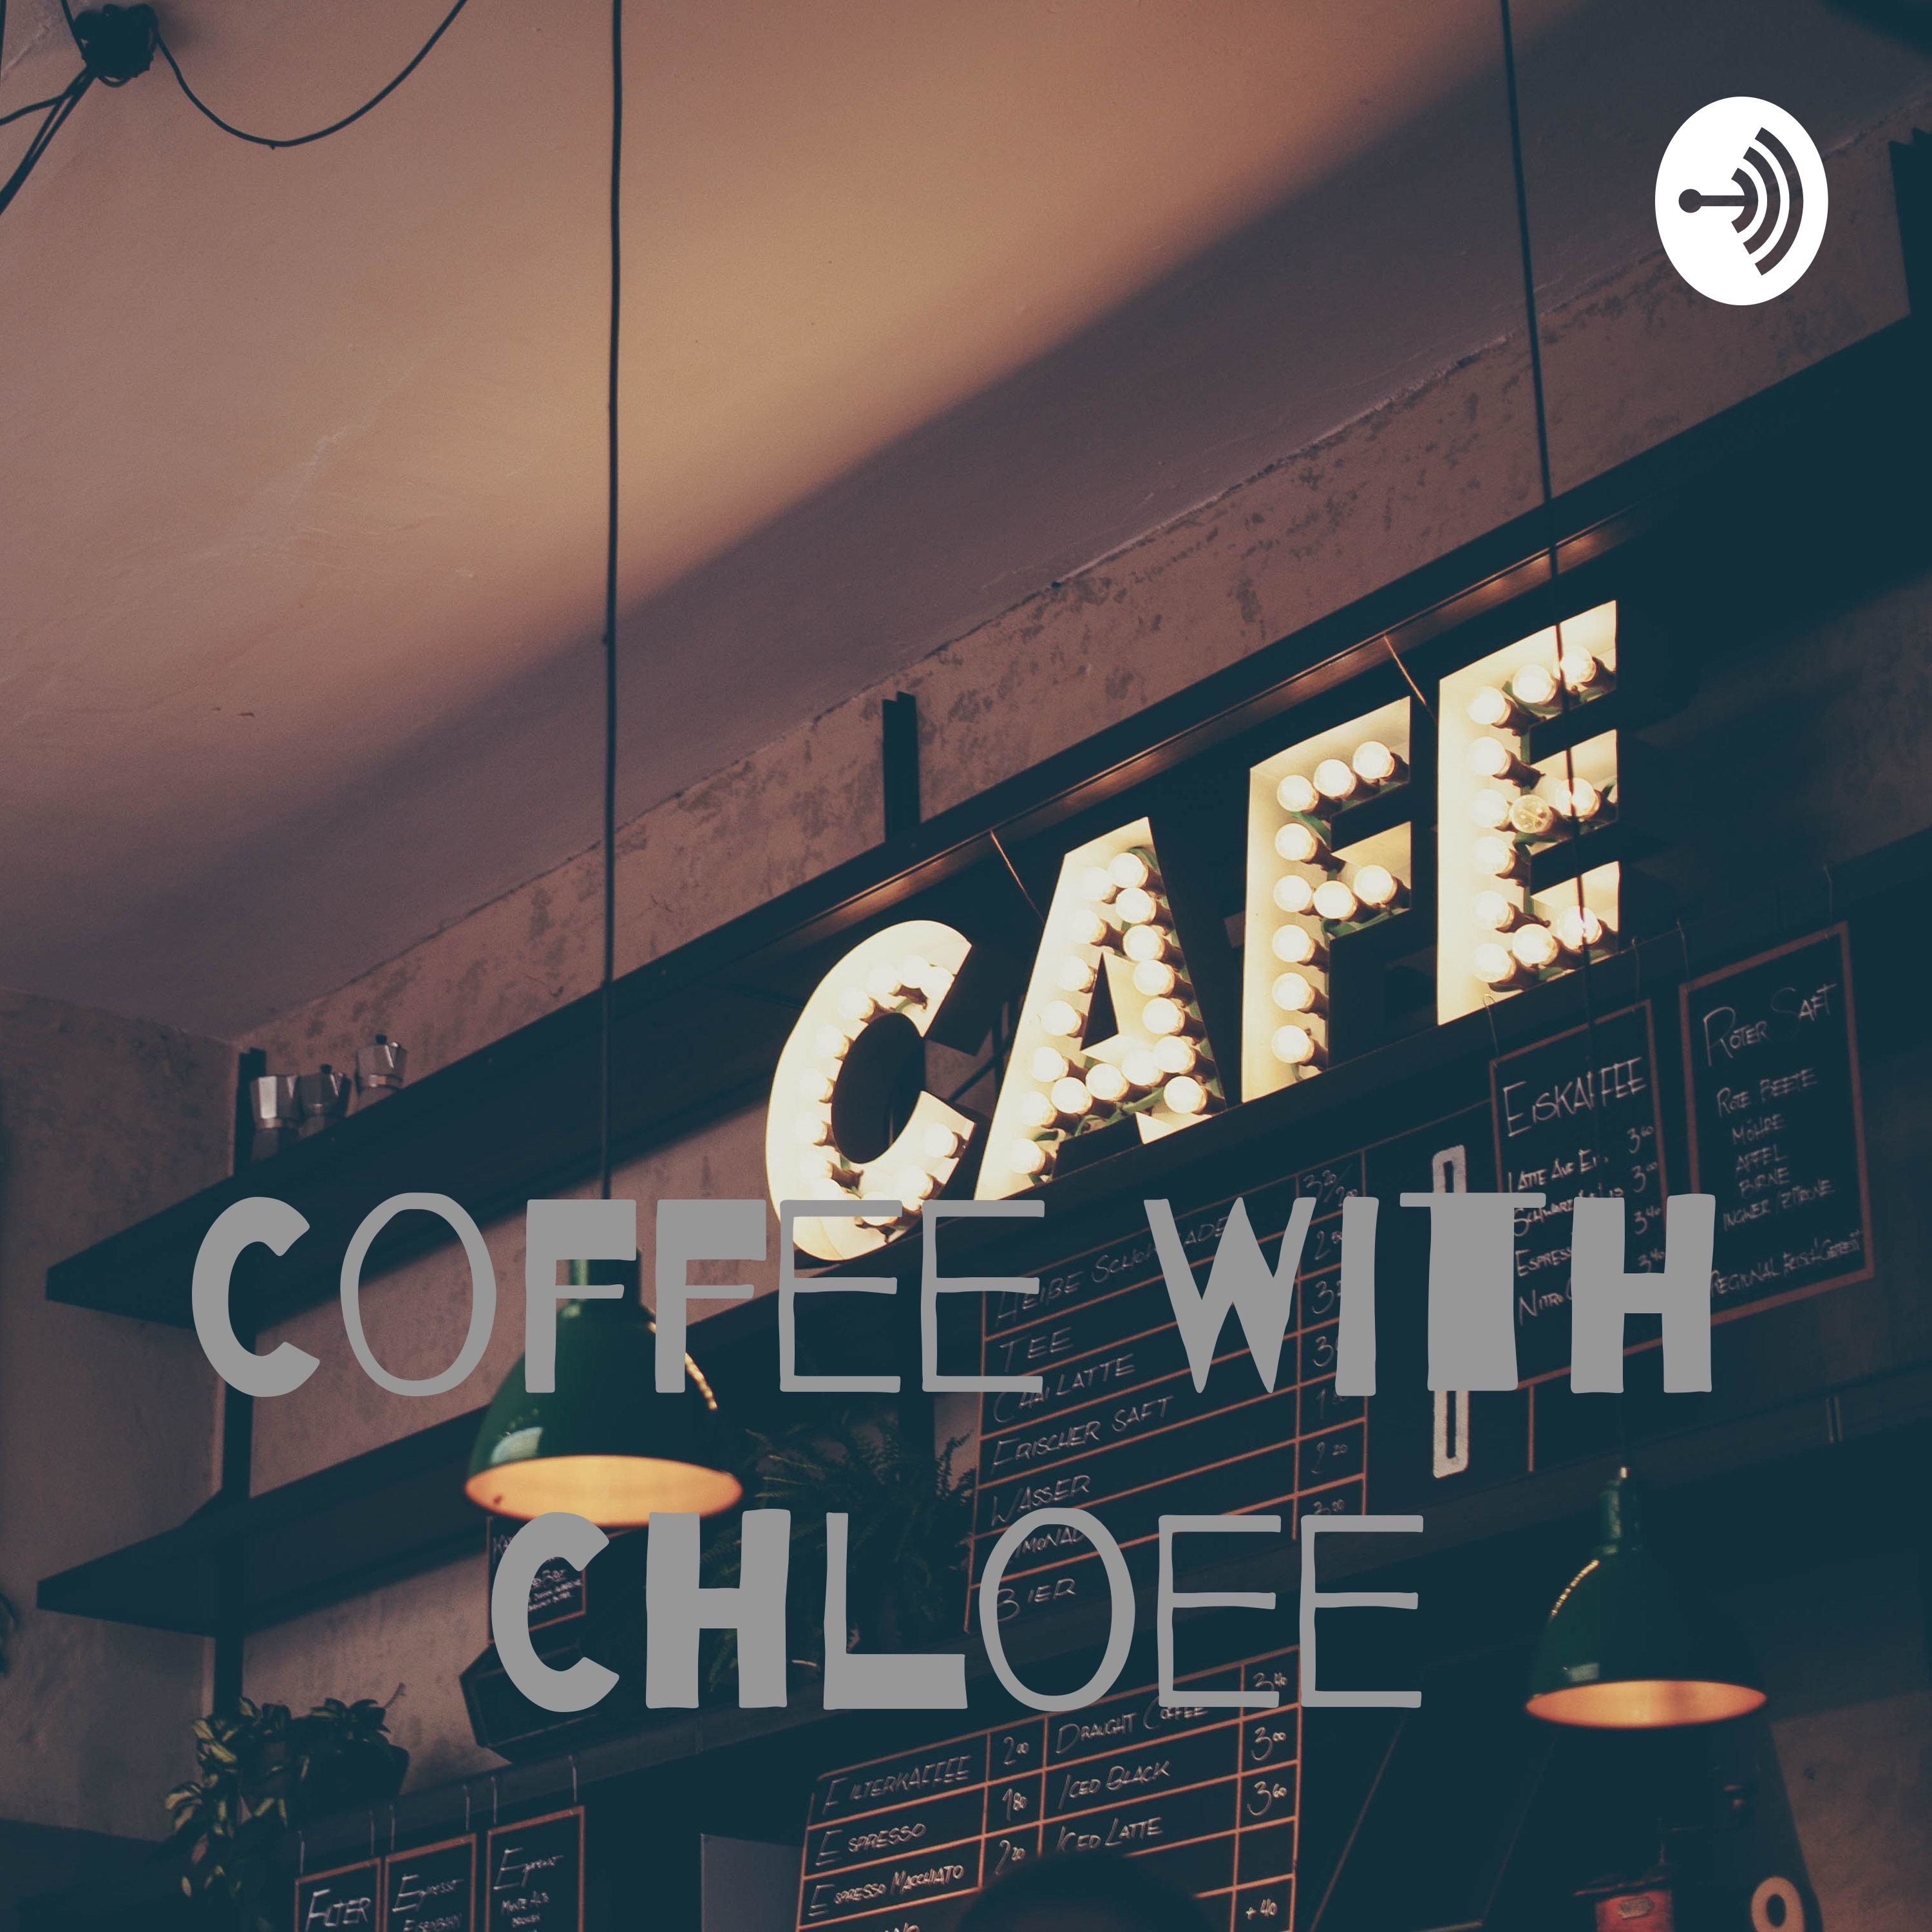 Coffee with Chloee